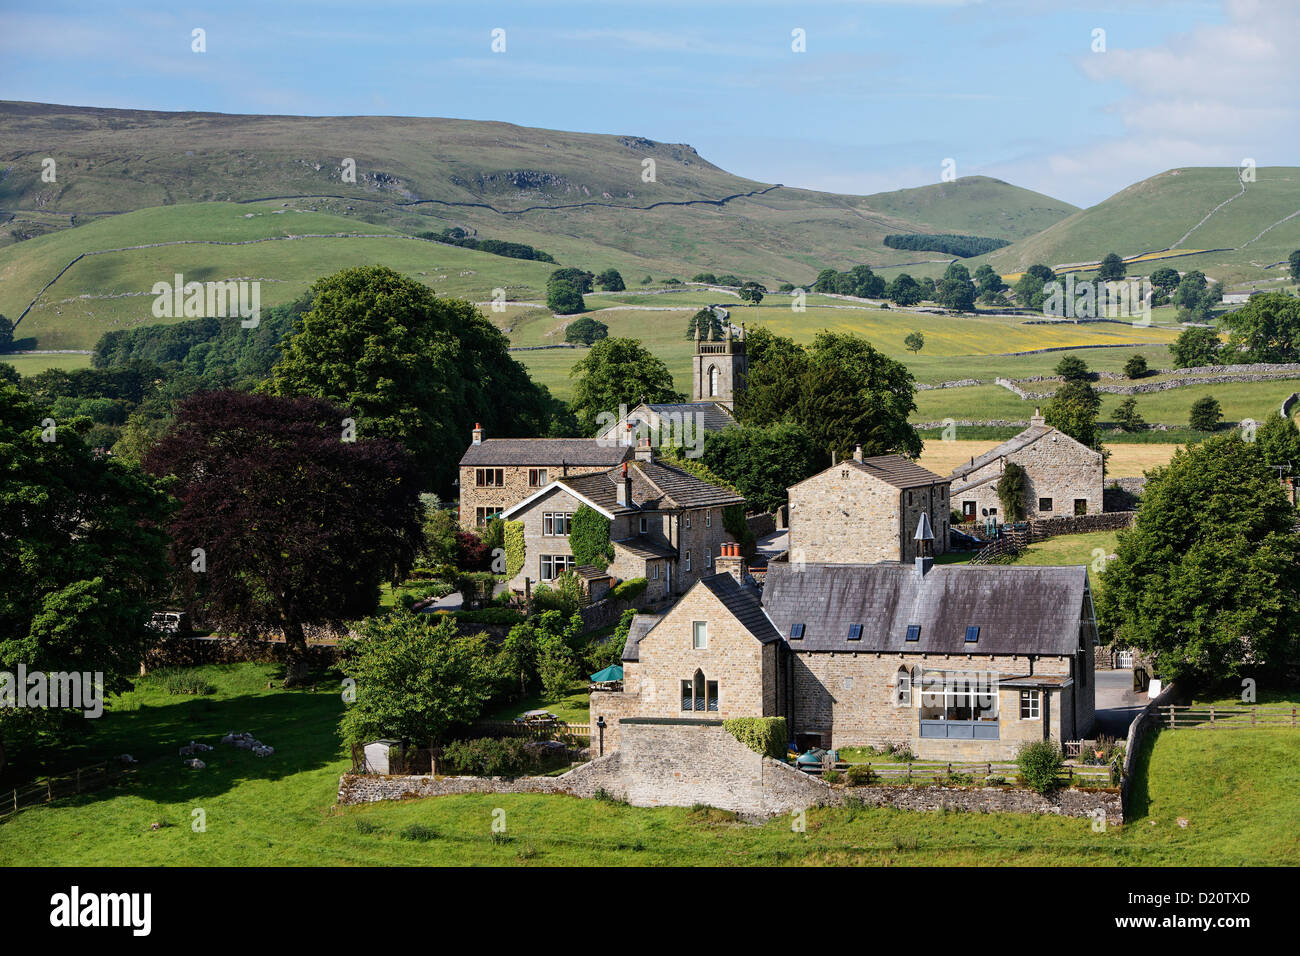 Houses at idyllic hilly landscape, Hebden, Yorkshire Dales National Park, Yorkshire Dales, Yorkshire, England, Great - Stock Image